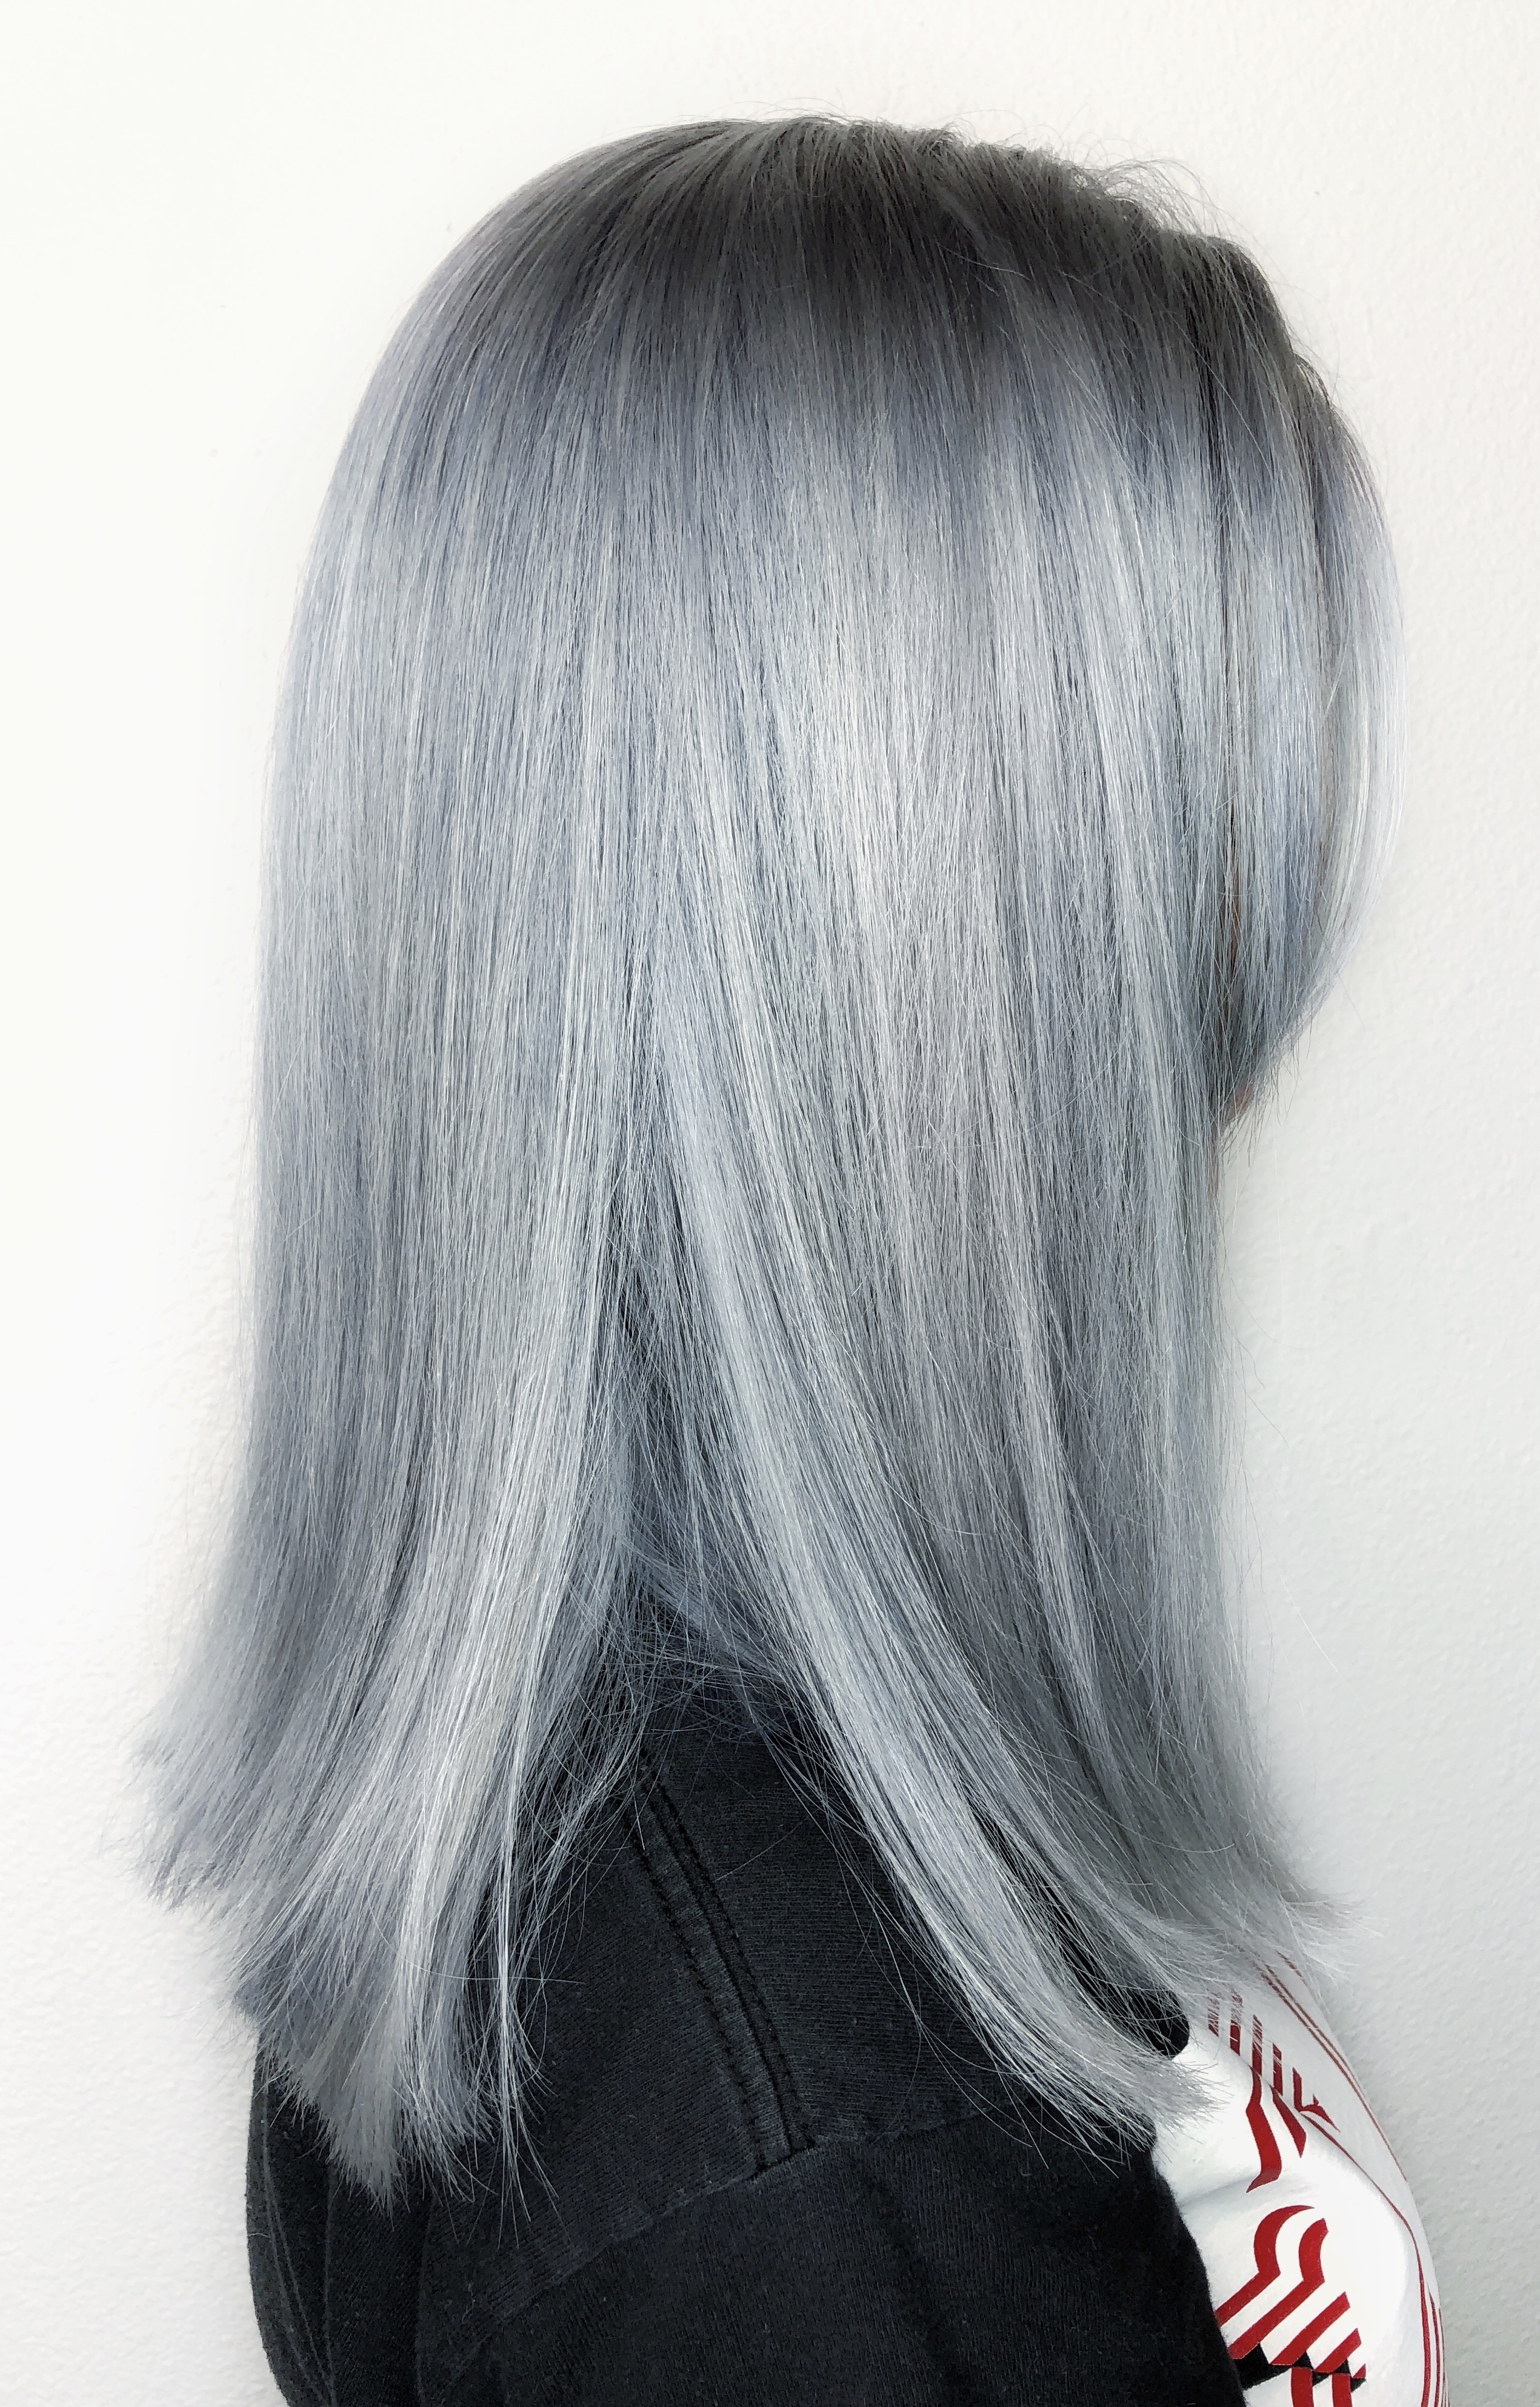 Best Hair Colors in Portland - Top Hair Color Trends & Ideas for 2020